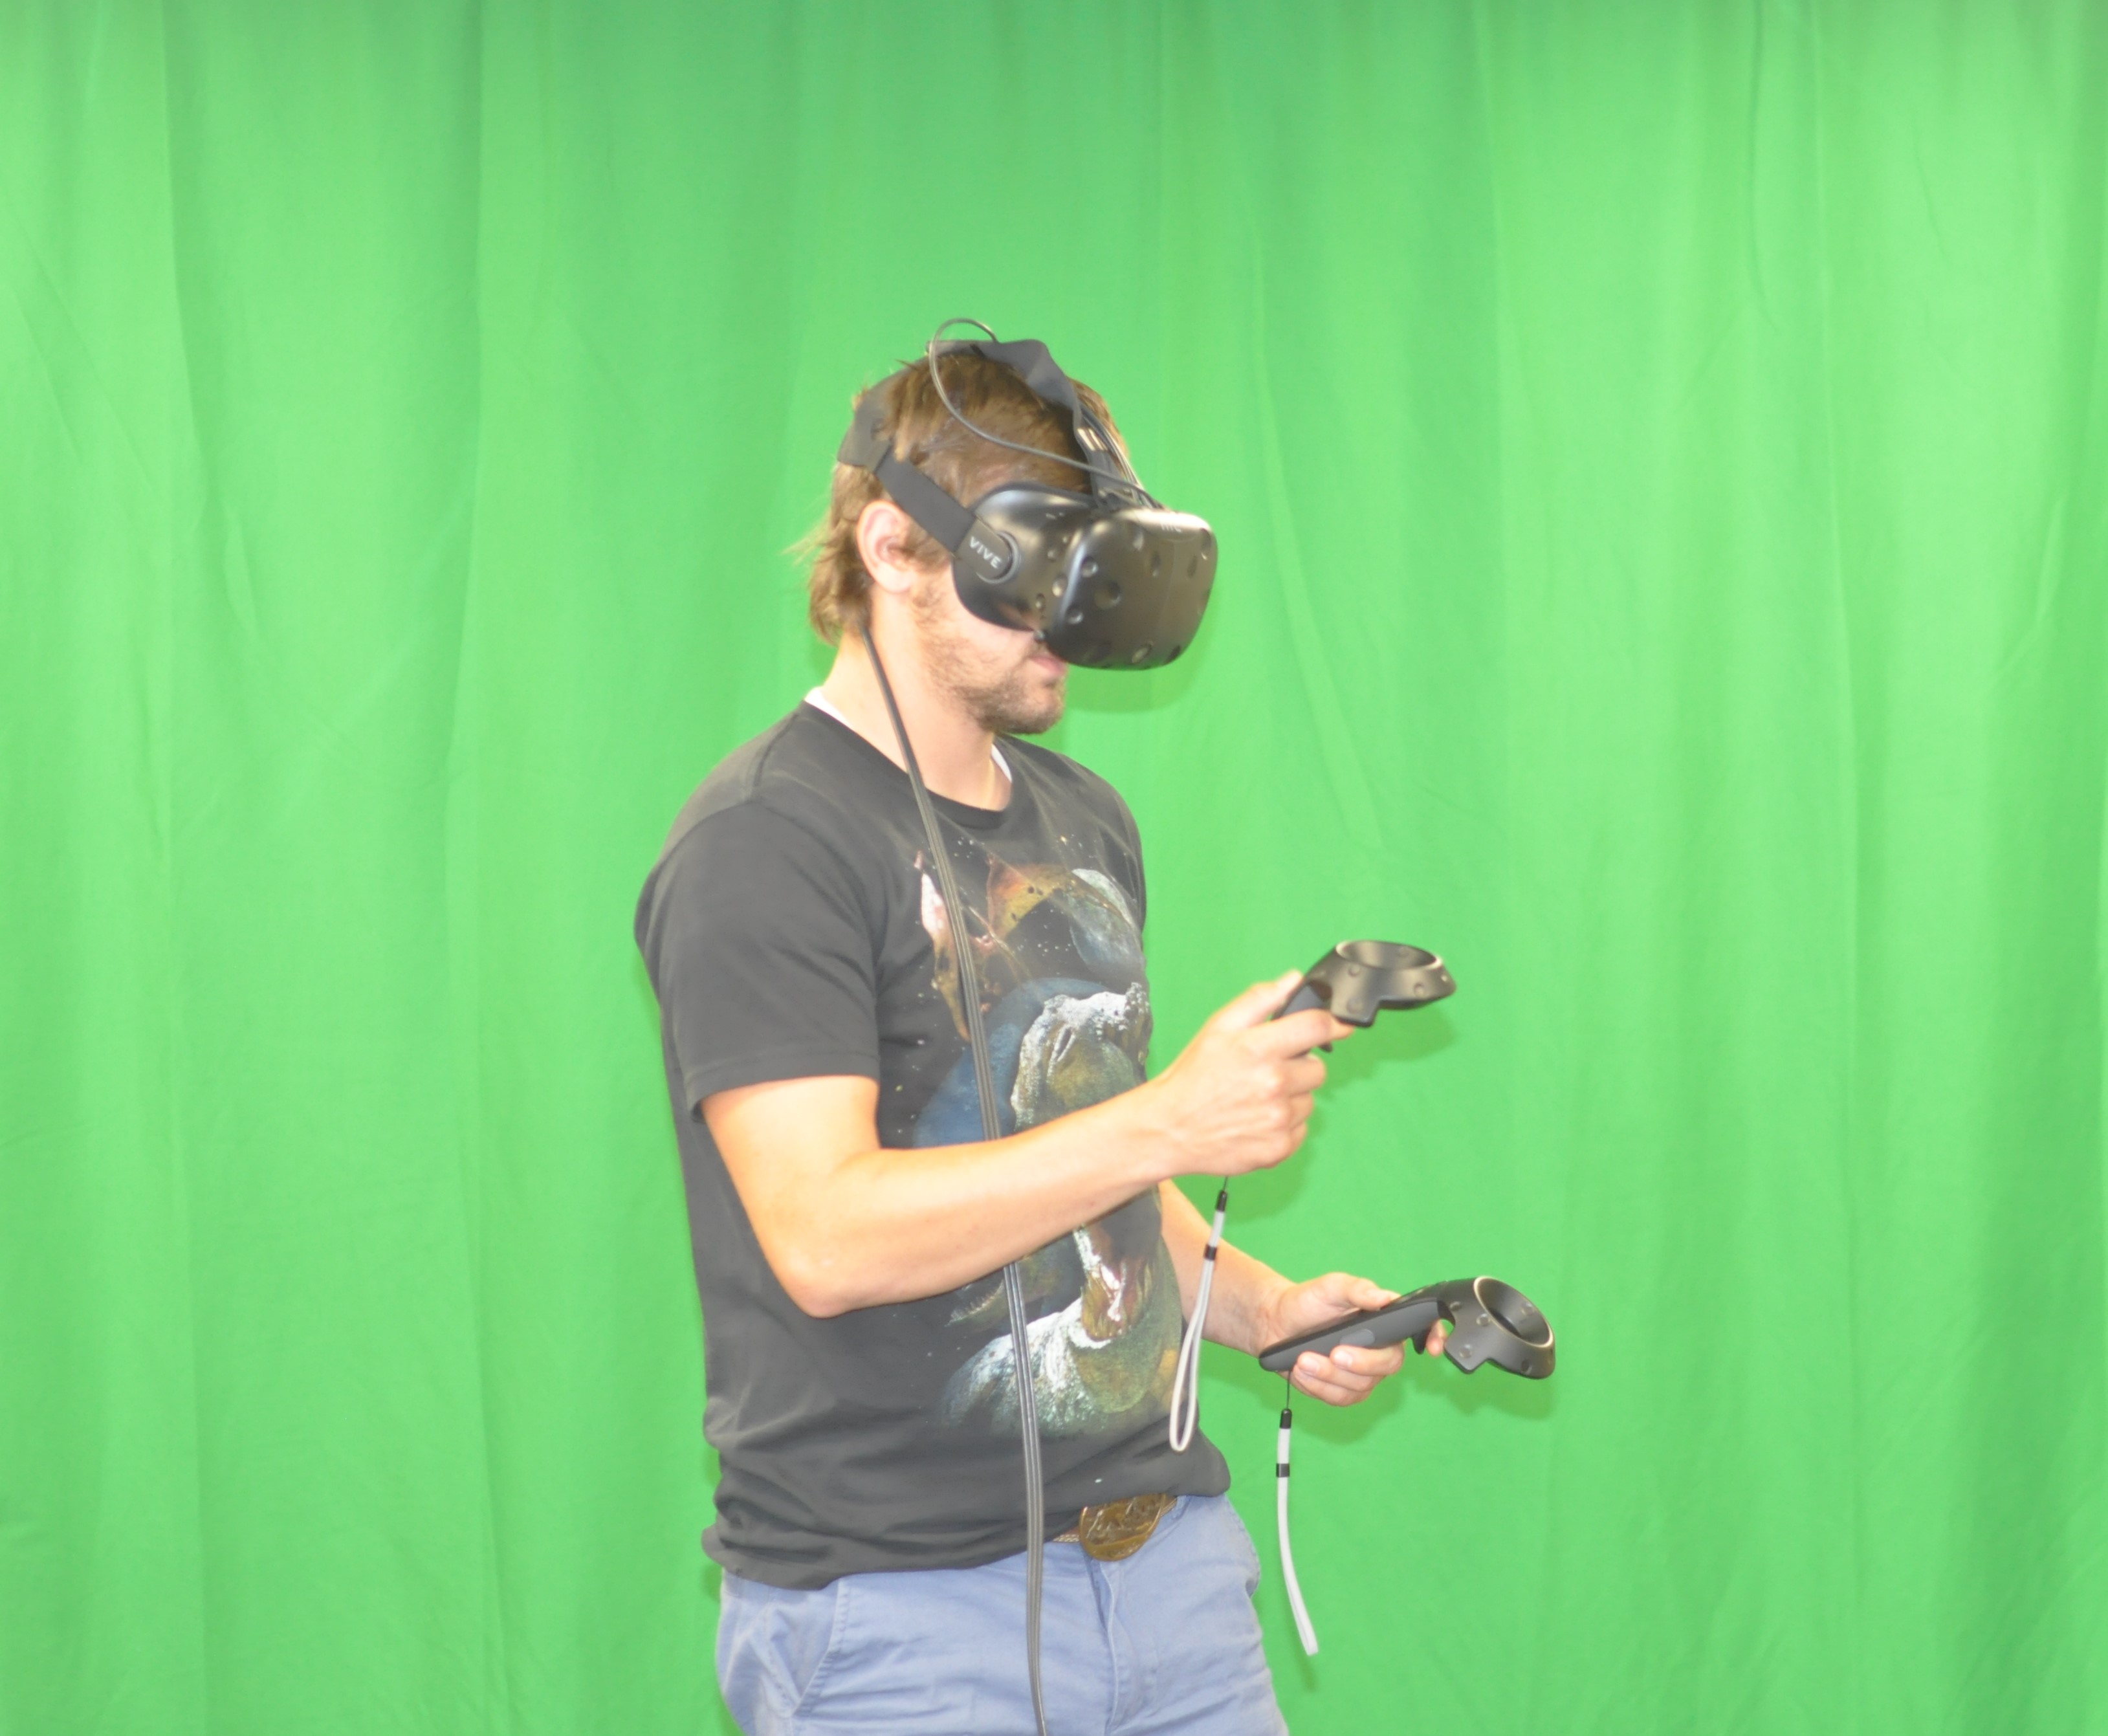 Green screen behind a man in VR